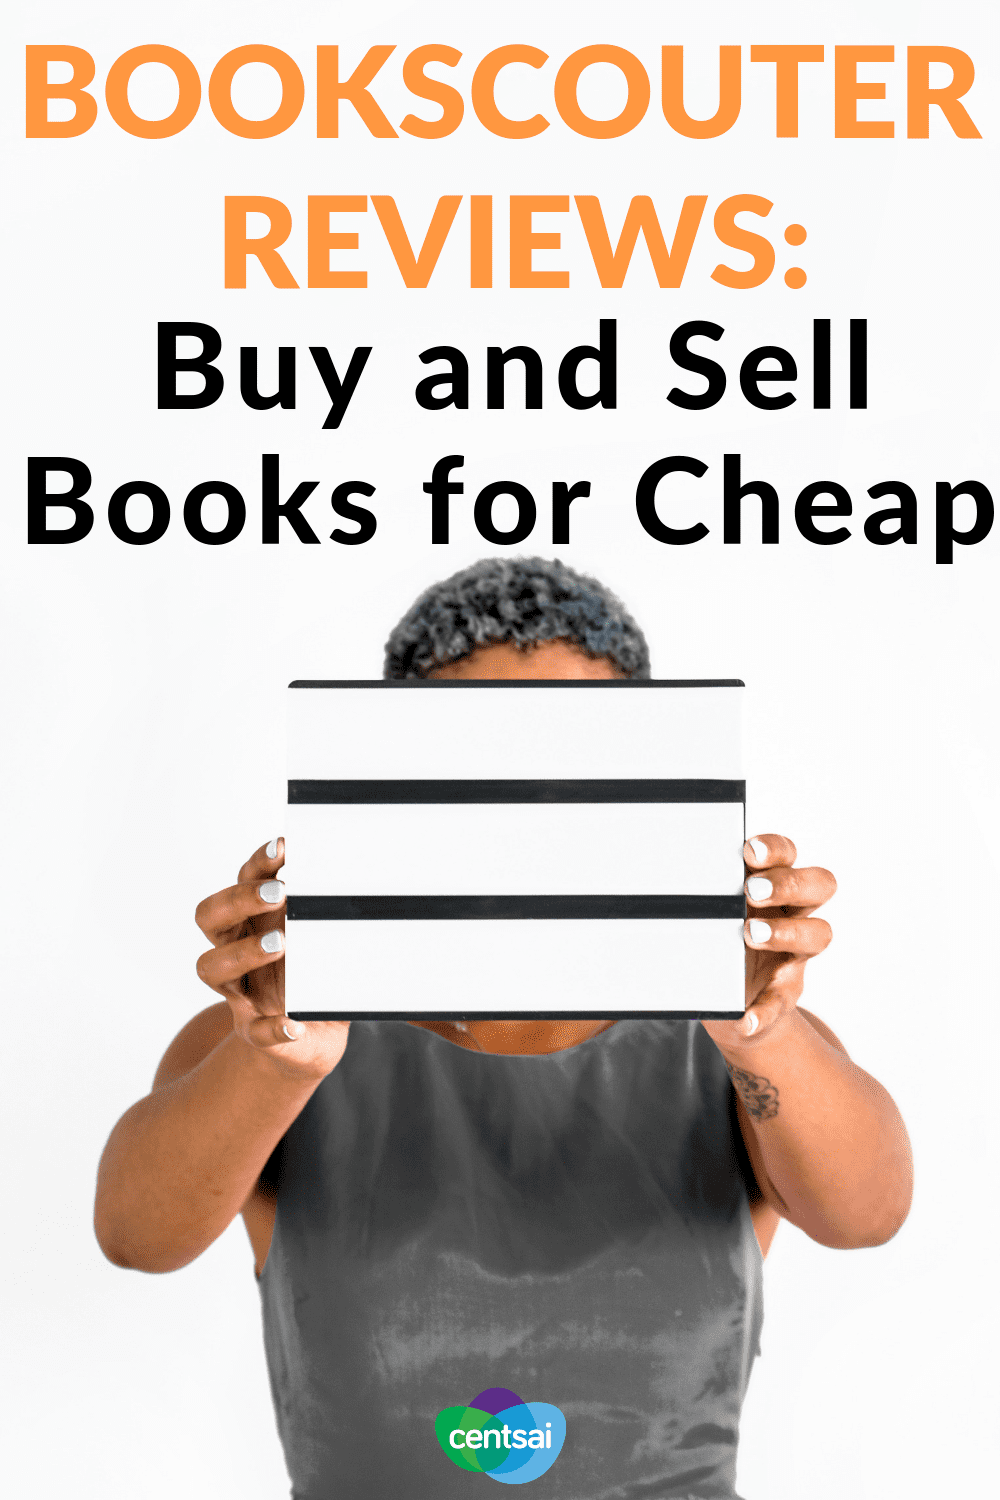 Bookscouter Reviews: Buy and Sell Books for Cheap! Do you ever wish it was easier to buy cheap books or to sell unwanted ones? We might have found a solution. Check out our Bookscouter reviews. #makemoremoney #sidehustle #bookscouter #review